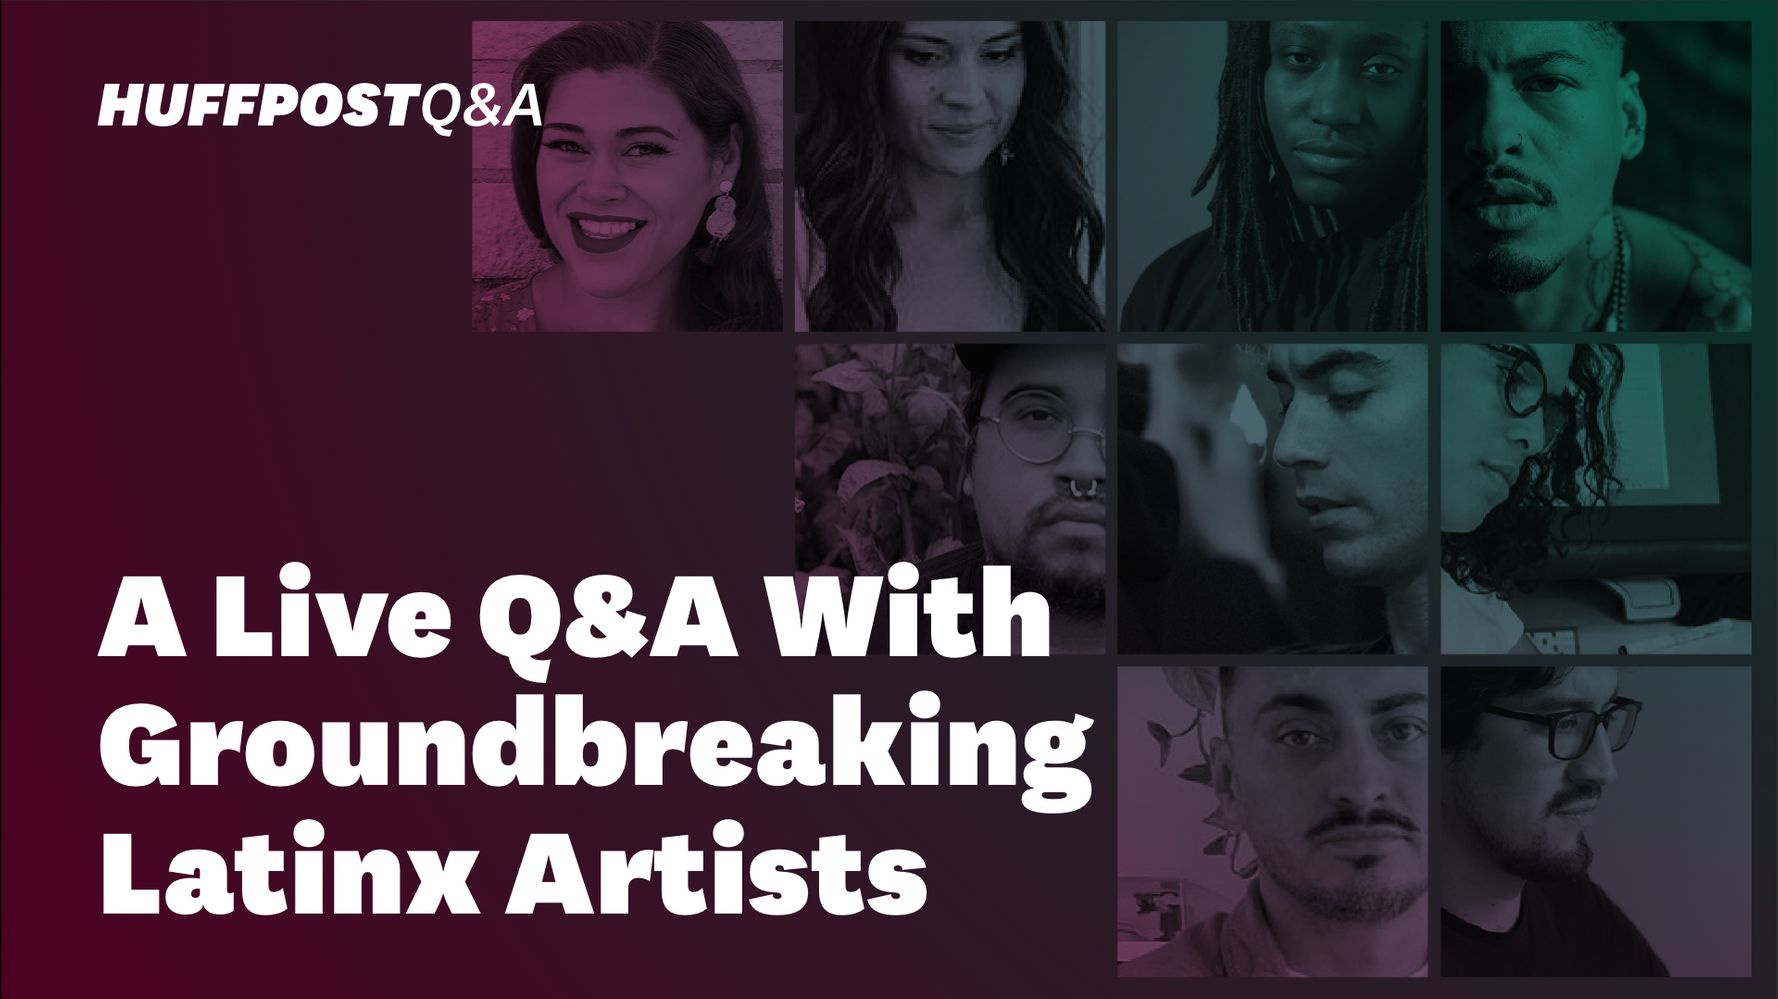 A Live Q&A With Groundbreaking Latinx Artists